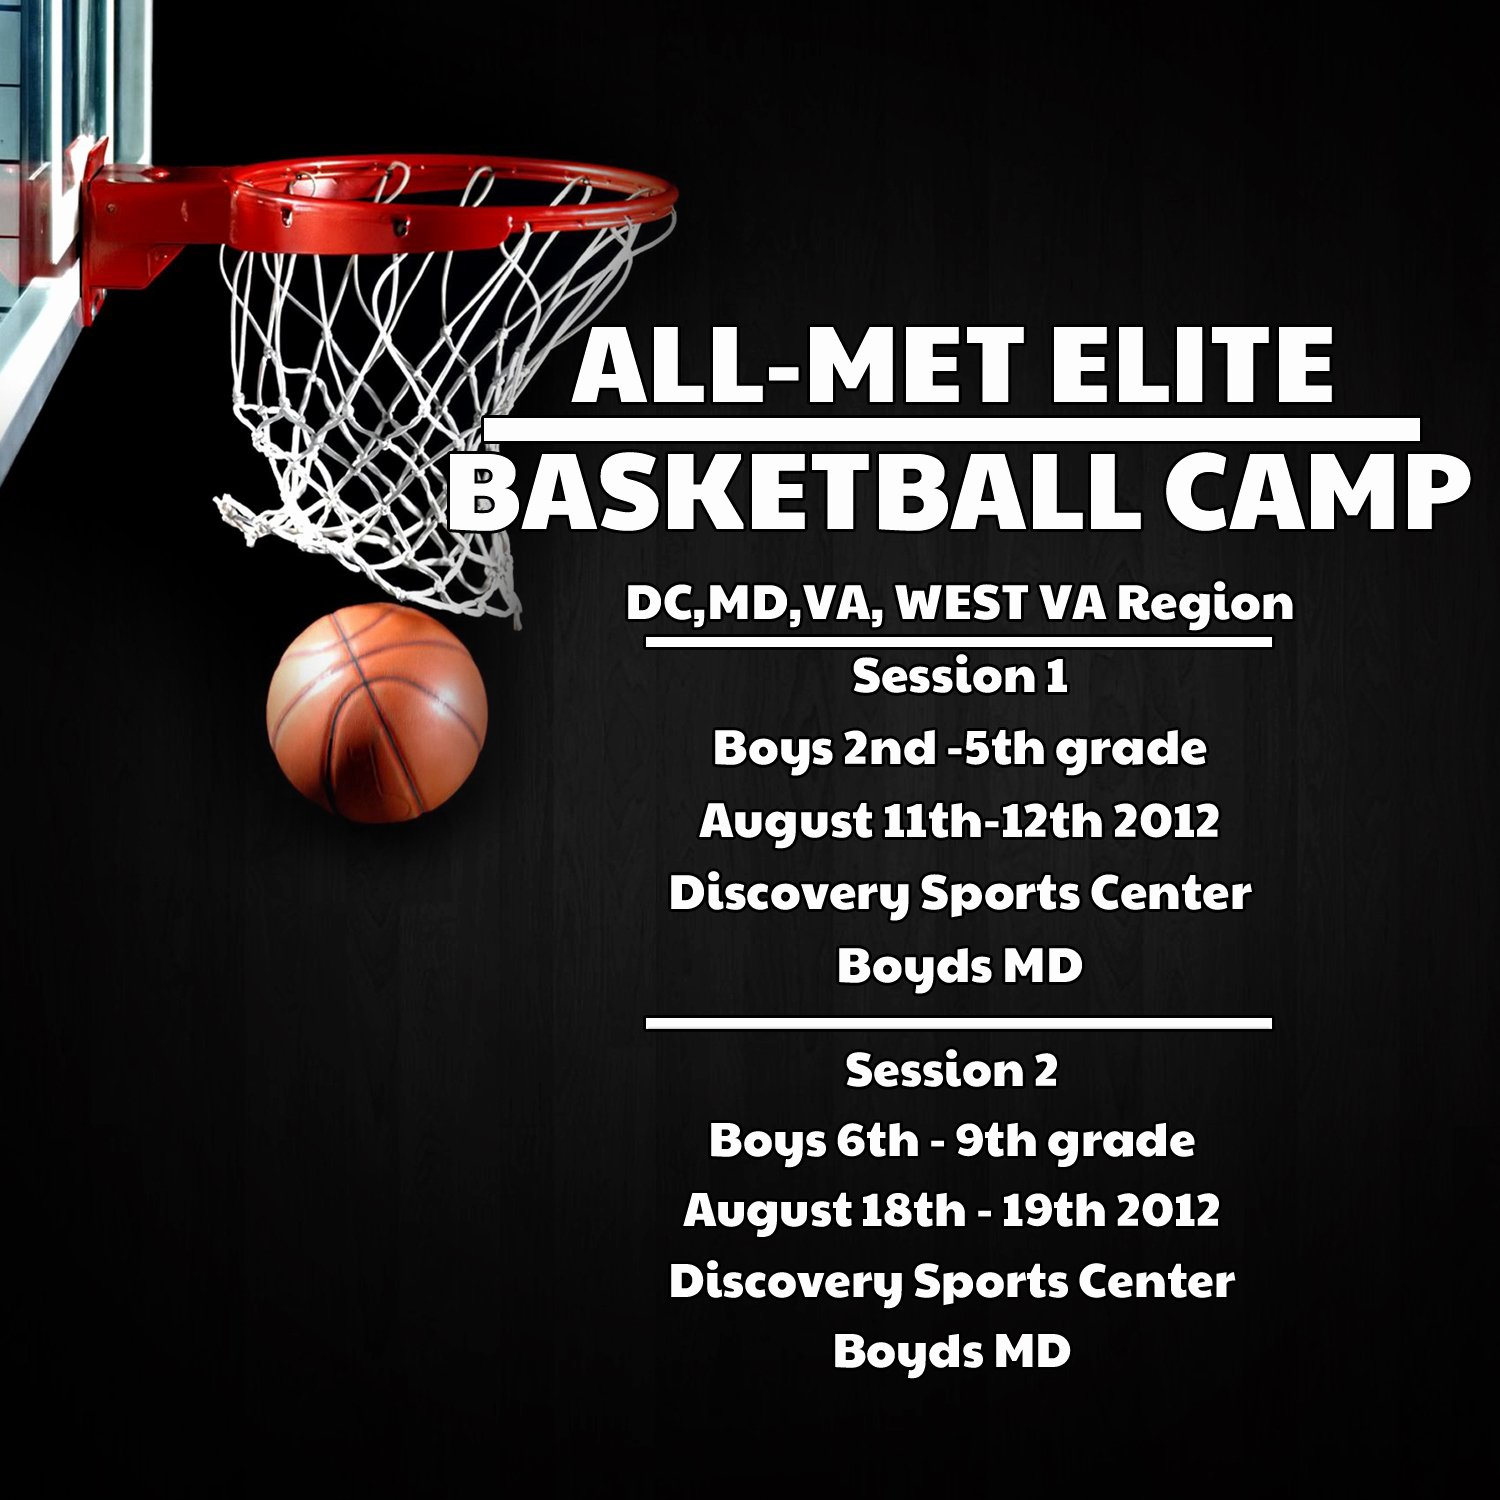 Basketball Camp Flyer Template Inspirational All Met Elite 06 01 2012 07 01 2012